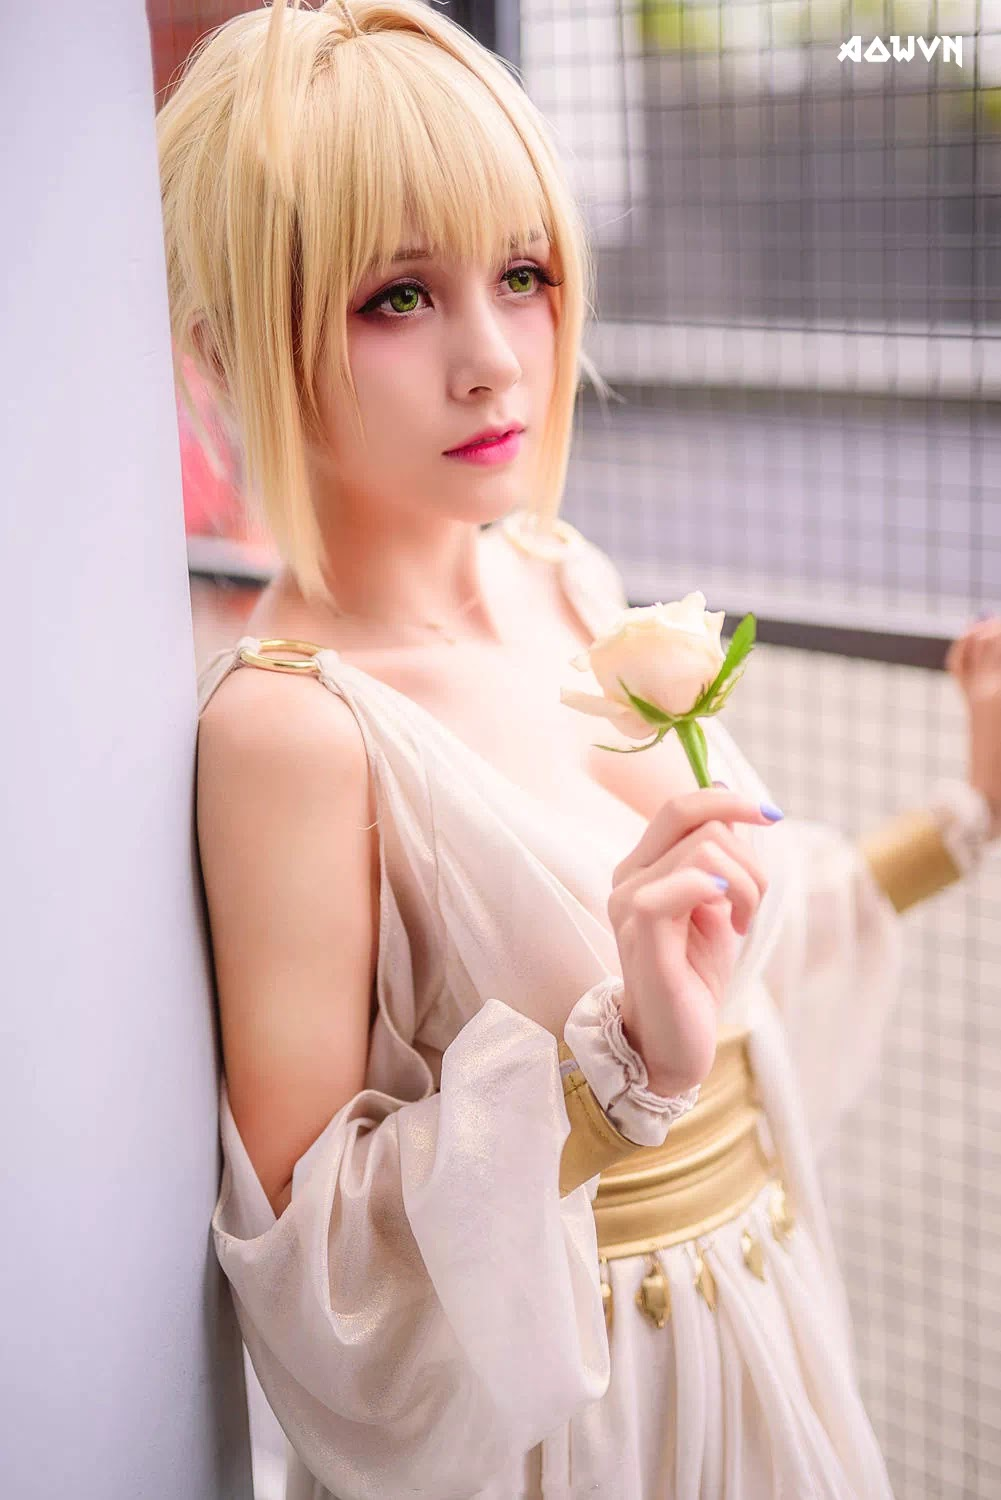 AowVN.org minz%2B%252811%2529 - [ Cosplay ] Nero - Saber anime Fate by Xia Mei Jiang tuyệt đẹp | AowVN Wallpapers